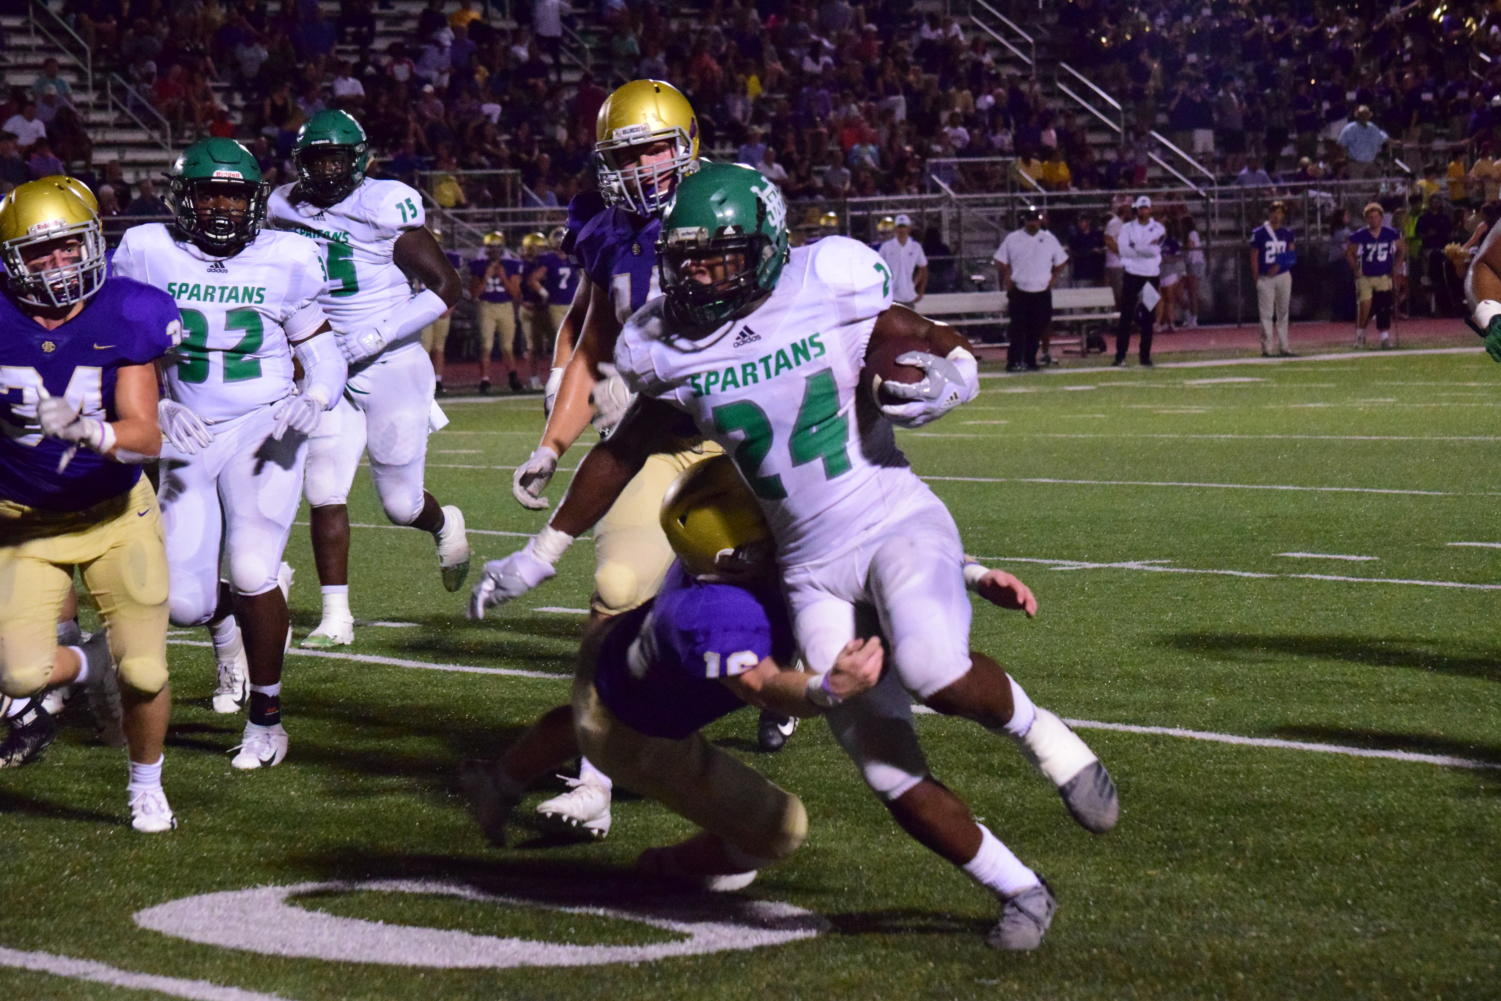 Dodging a tackle, Eli Neal (12) makes a break for the endzone against Christian Brothers.